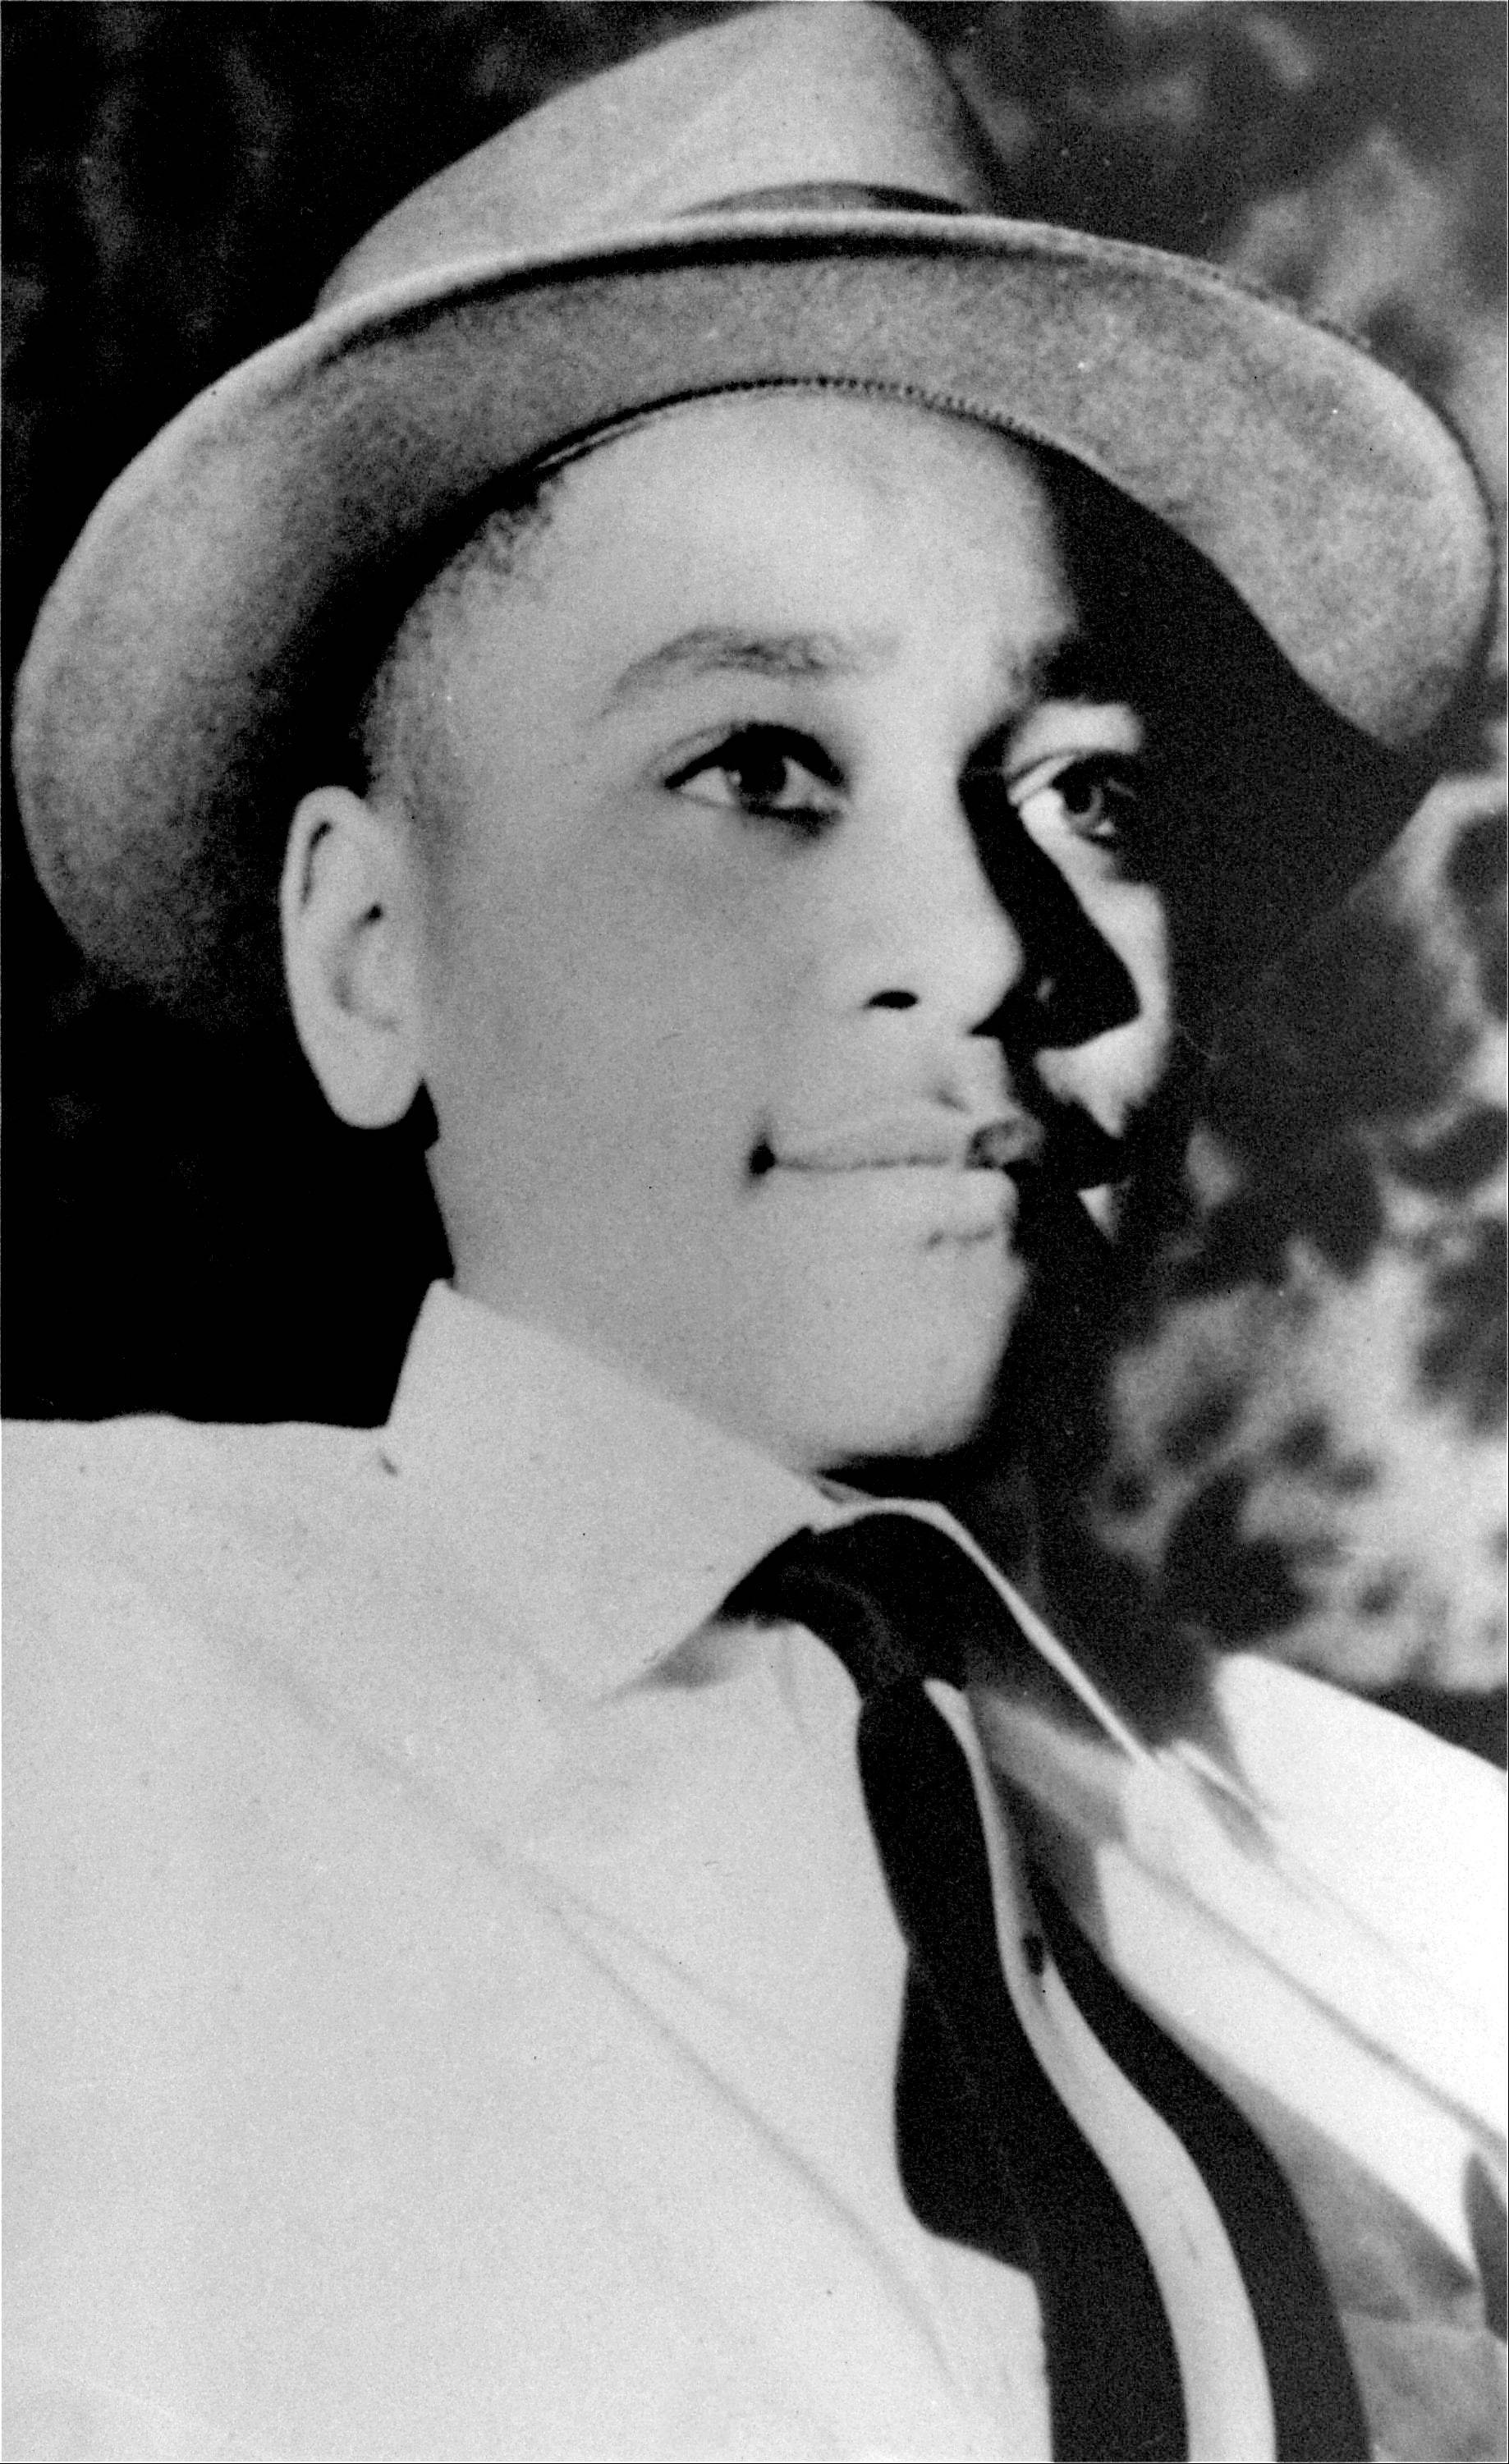 This file photo shows Emmett Till, a black 14-year-old Chicago boy, who was brutally murdered near Money, Mississippi, Aug. 31, 1955.